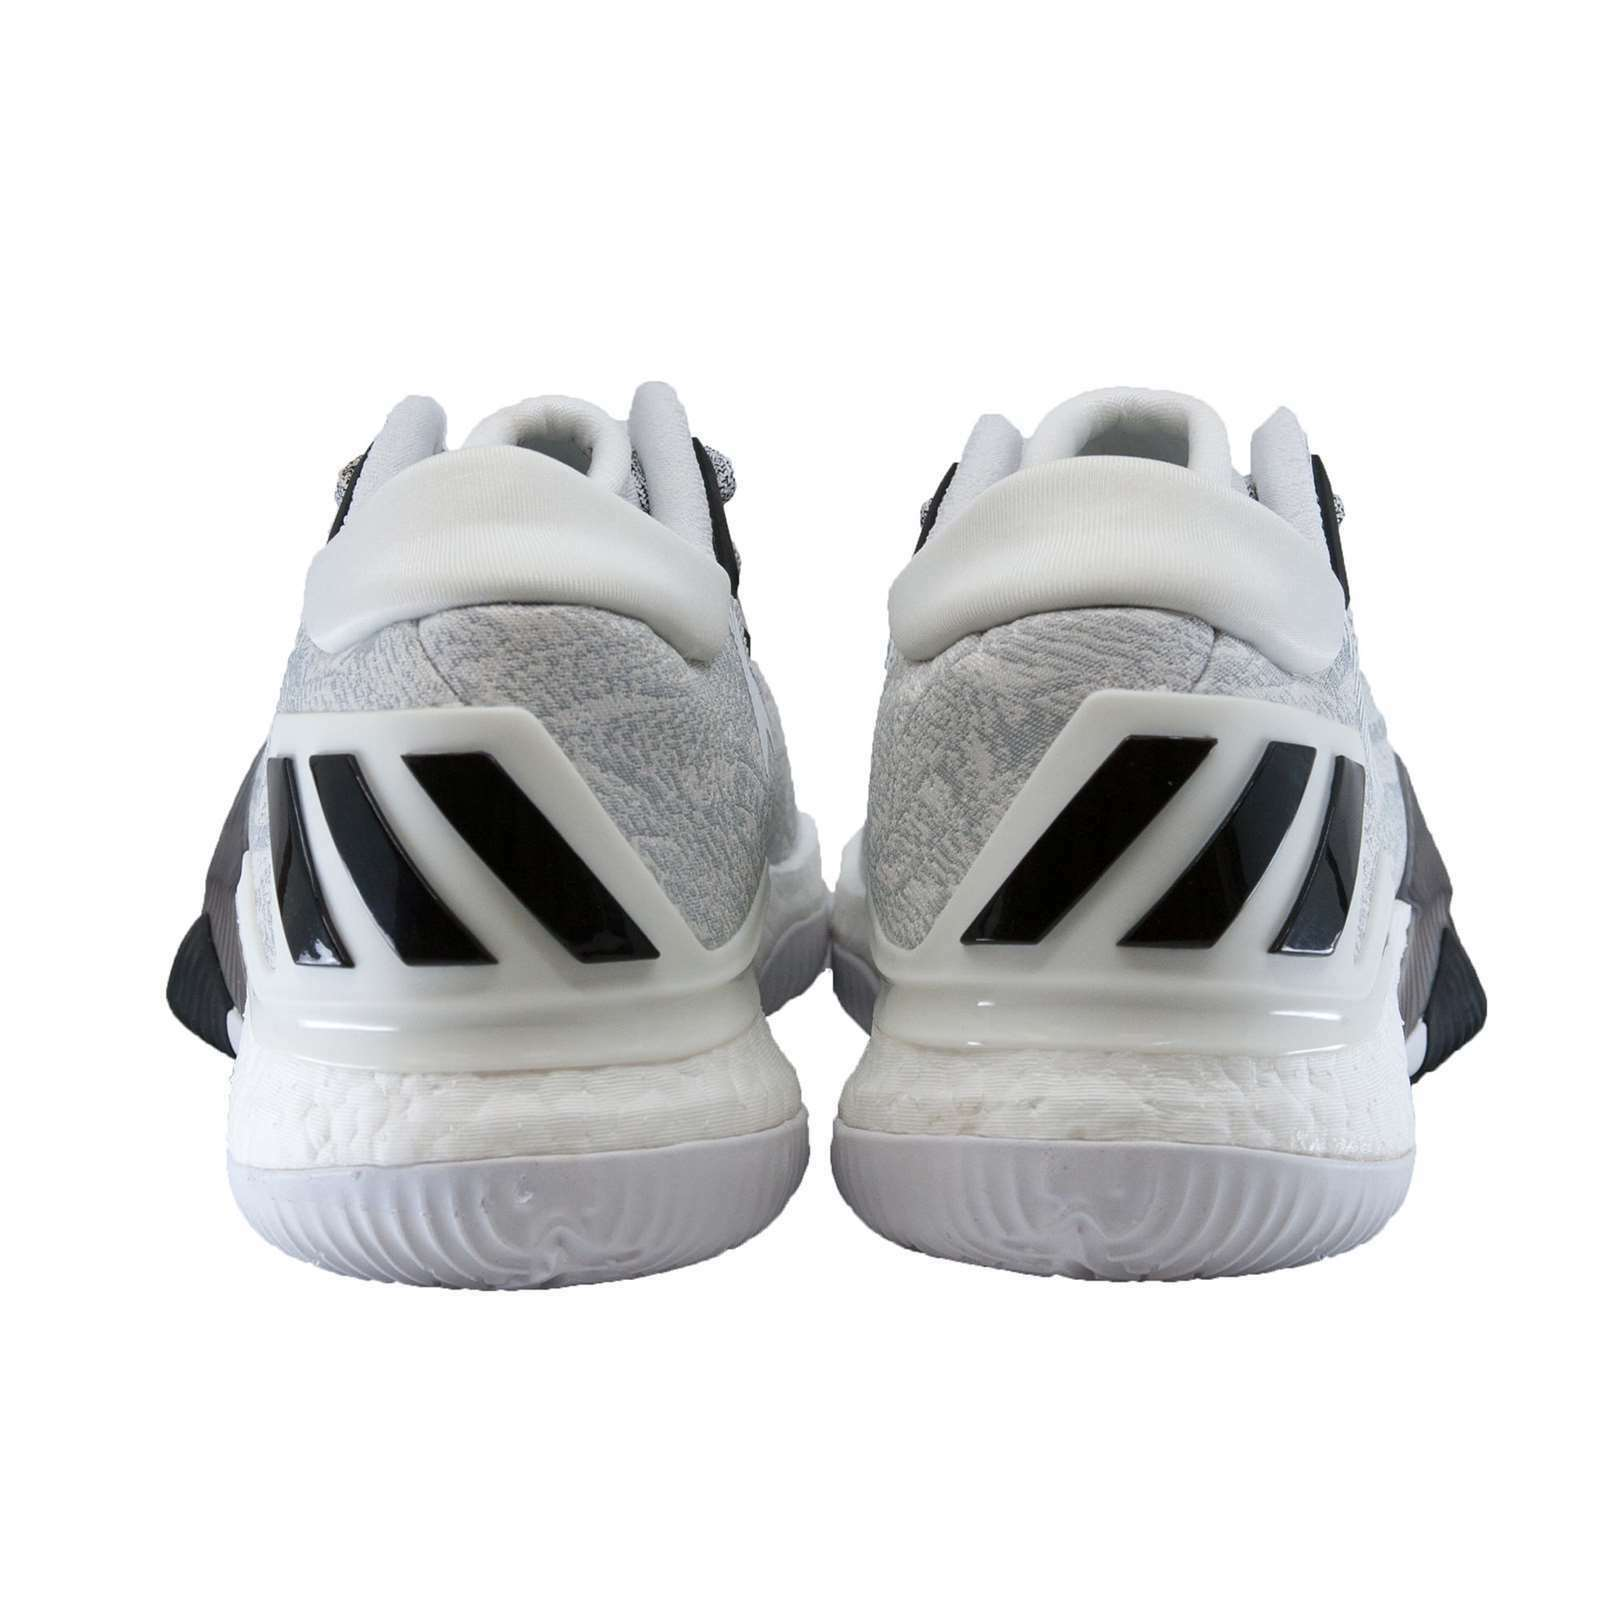 Adidas Men Athletic SM CL Crazylight Boost Low Basketball 2016 Vets Day Basketball Low Shoes 8be8a0